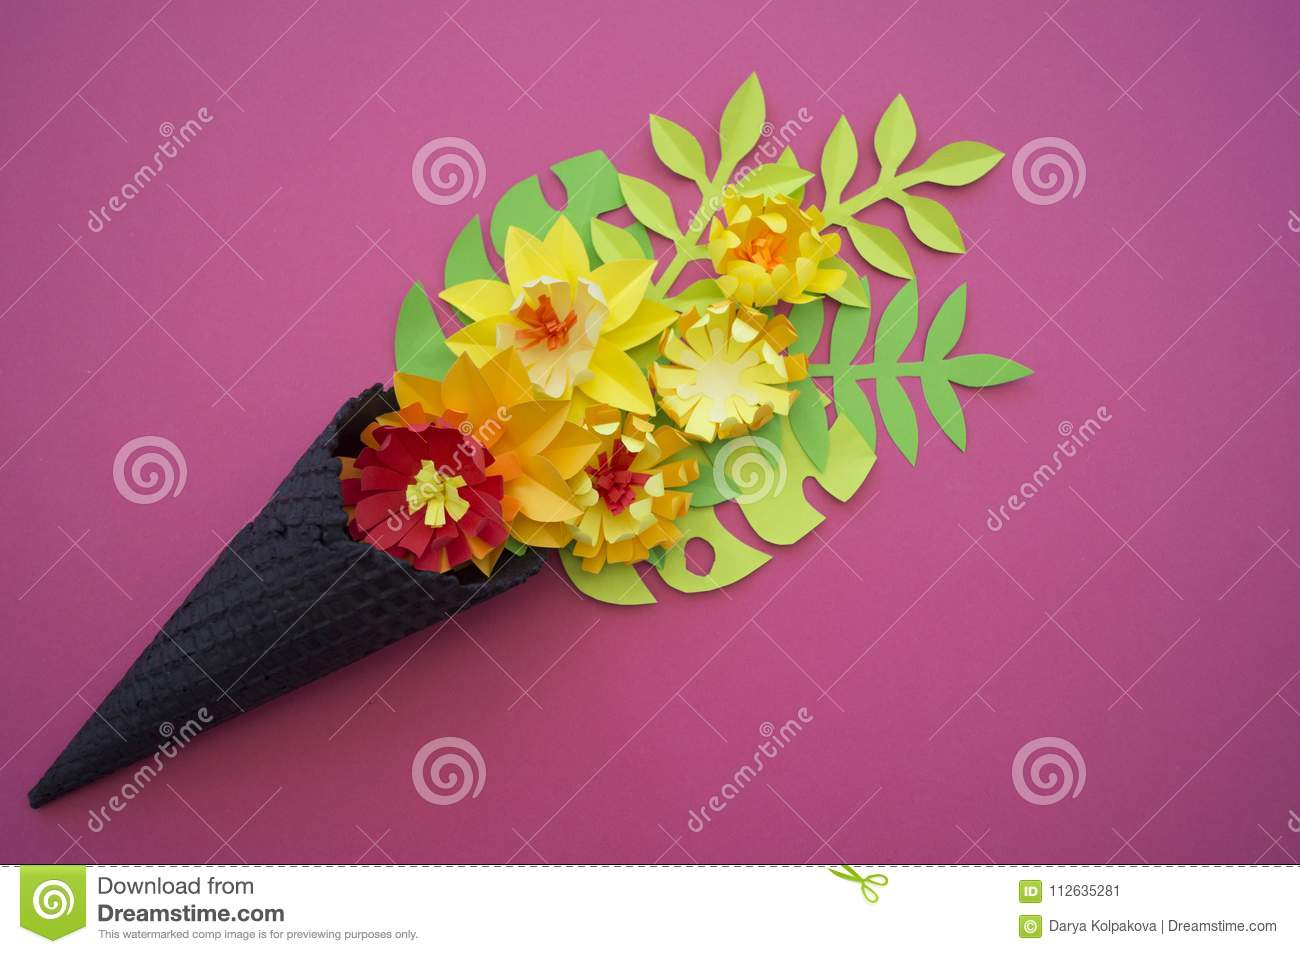 Beautiful flower in ice cream cone on pink background stock image ice cream cone with flowers and leaves on pink background flat lay craft paper flower mightylinksfo